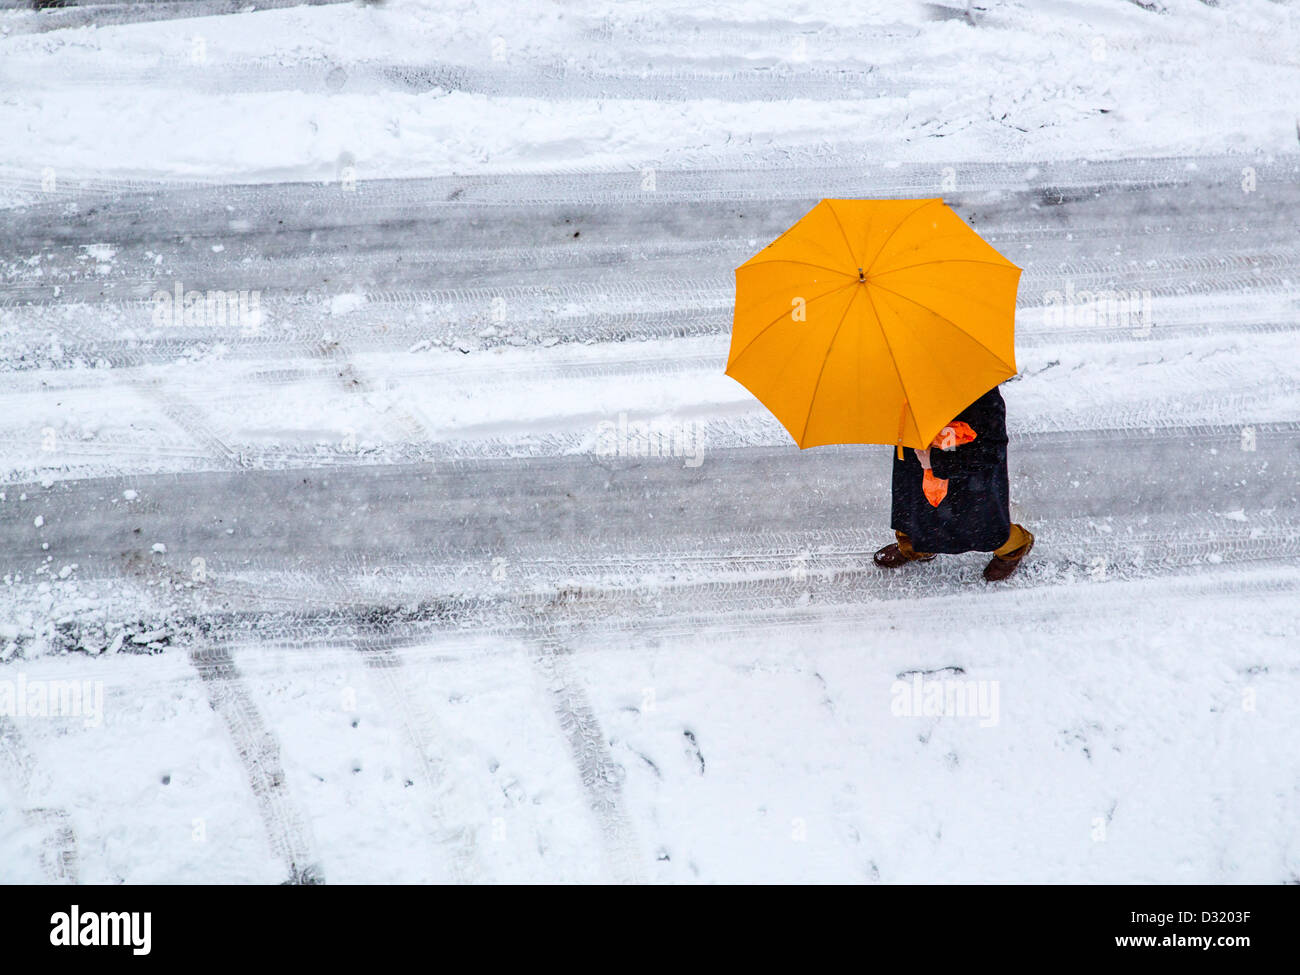 Person with a yellow umbrella walks on a snow covered street. - Stock Image